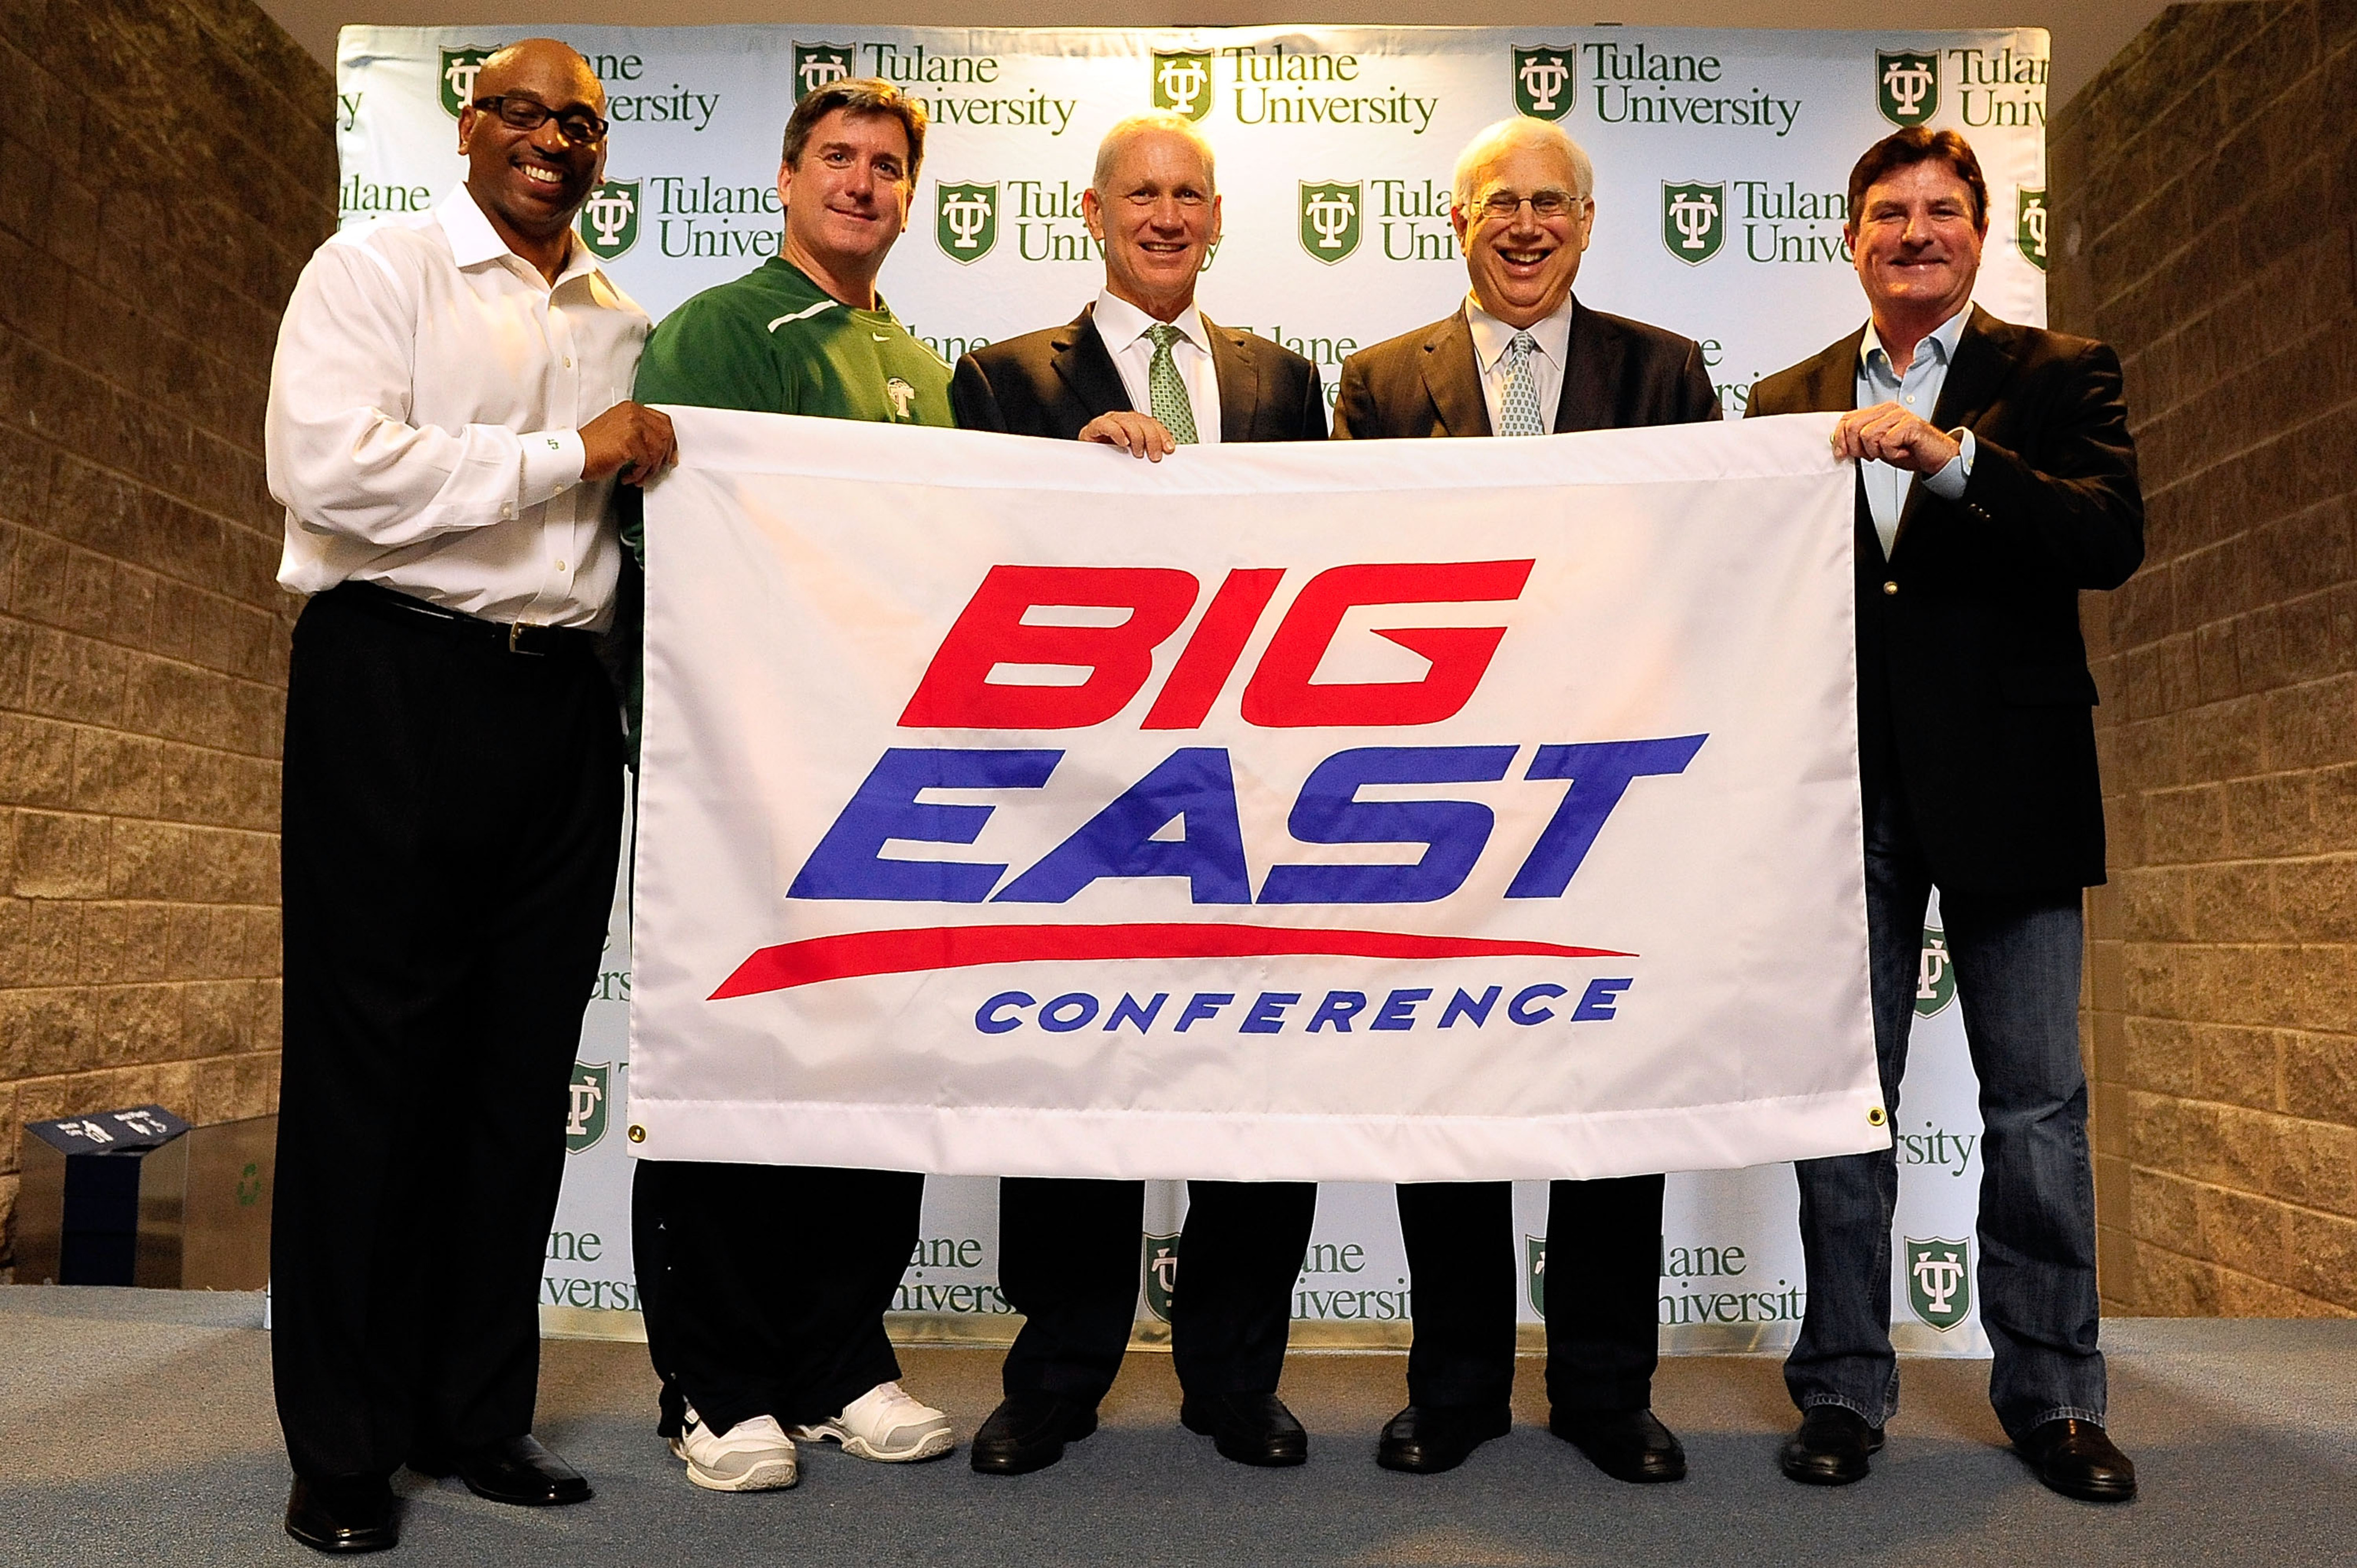 Poor Tulane never got to play in the Big East.